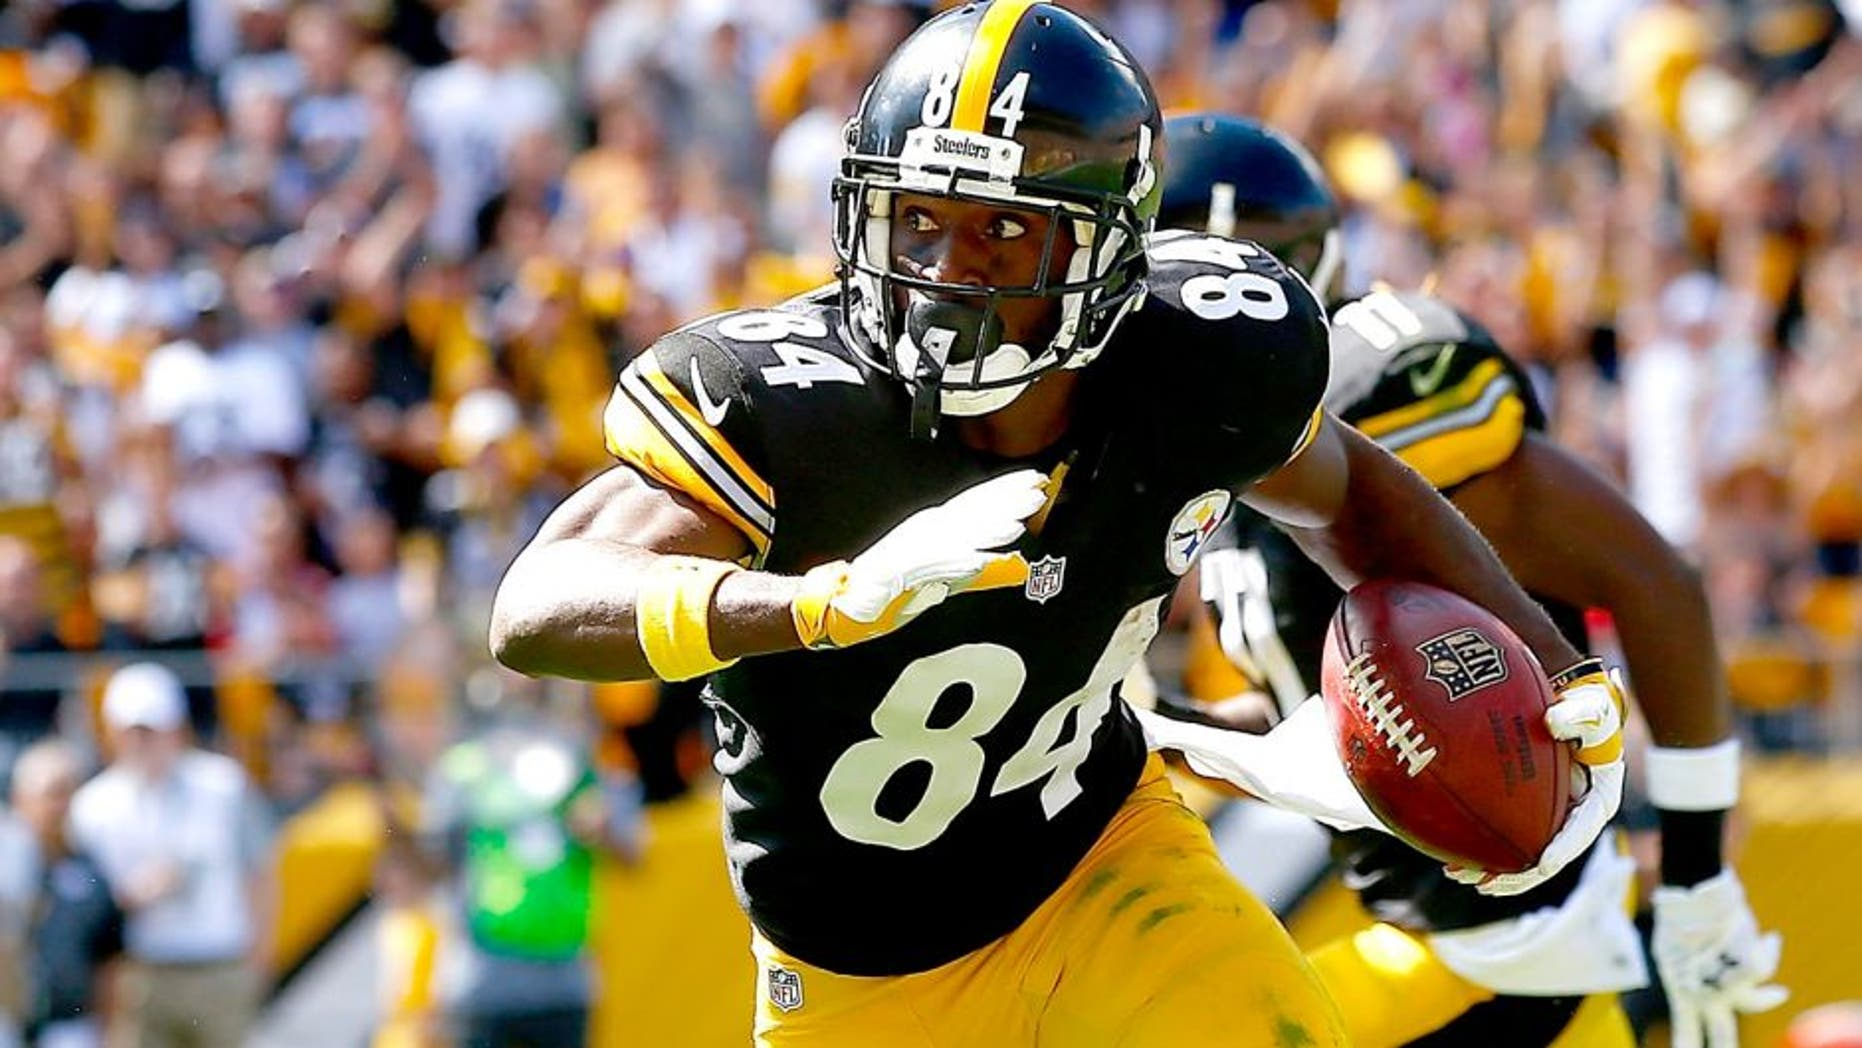 PITTSBURGH, PA - SEPTEMBER 20: Antonio Brown #84 of the Pittsburgh Steelers runs with the ball following a 59 yard pass in the first quarter against the San Francisco 49ers during the game at Heinz Field on September 20, 2015 in Pittsburgh, Pennsylvania. (Photo by Jared Wickerham/Getty Images)